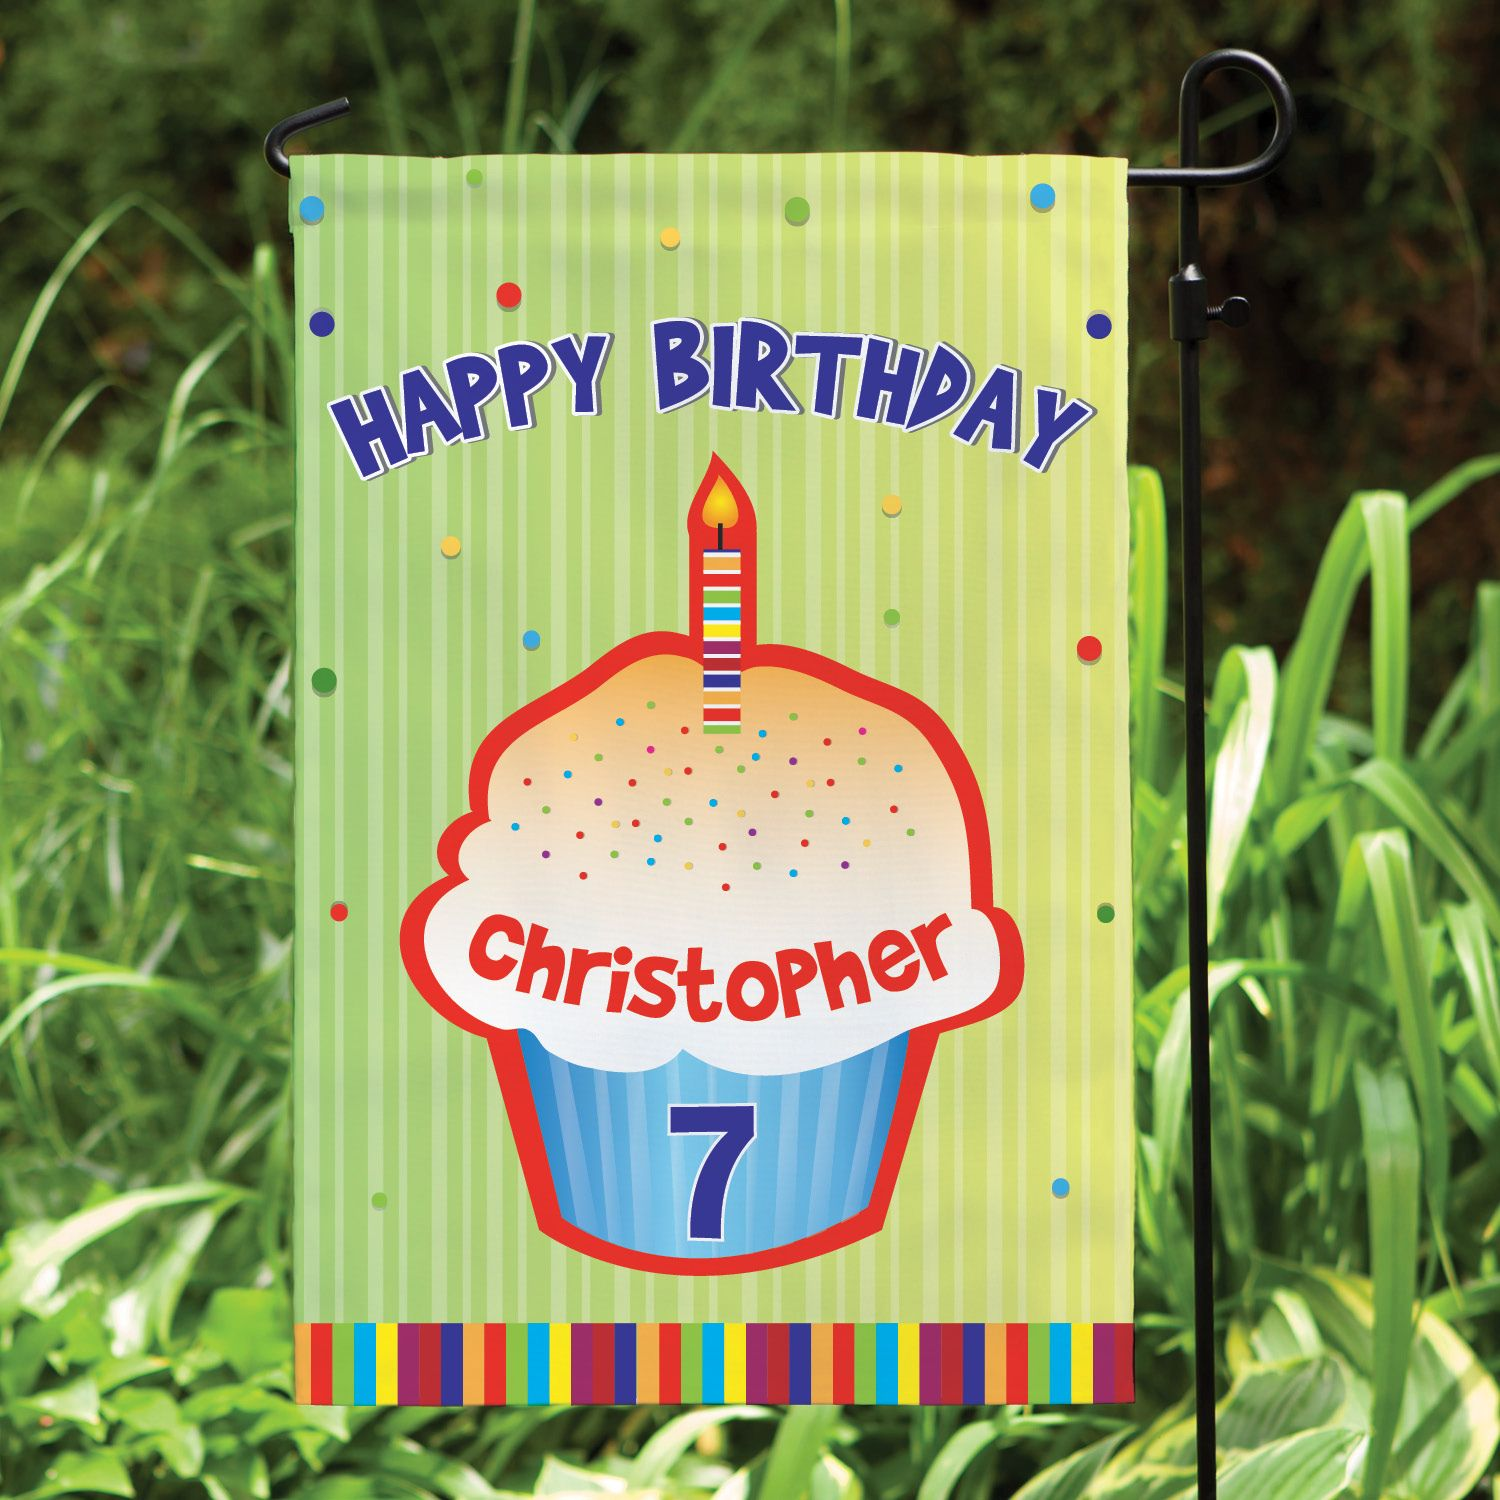 Celebrate Your Little One S Birthday With This Colorful Garden Flag Personalized Garden Flag Pink Happy Birthday Personalized Birthday Banners